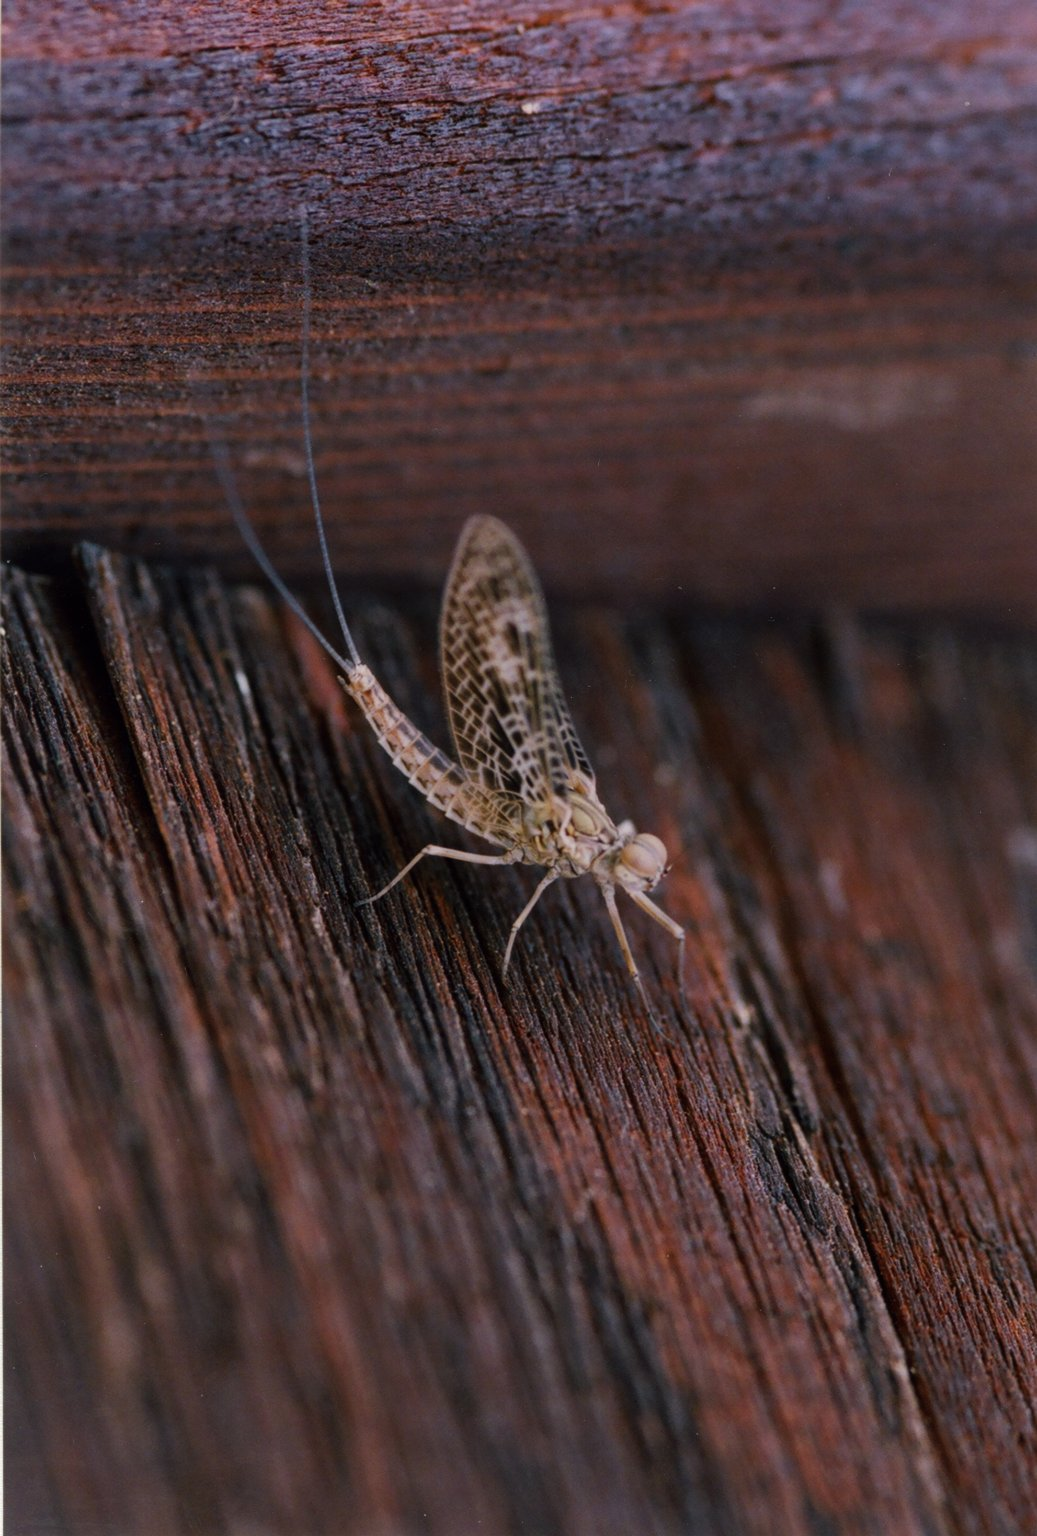 Close up of unidentified insect on wood